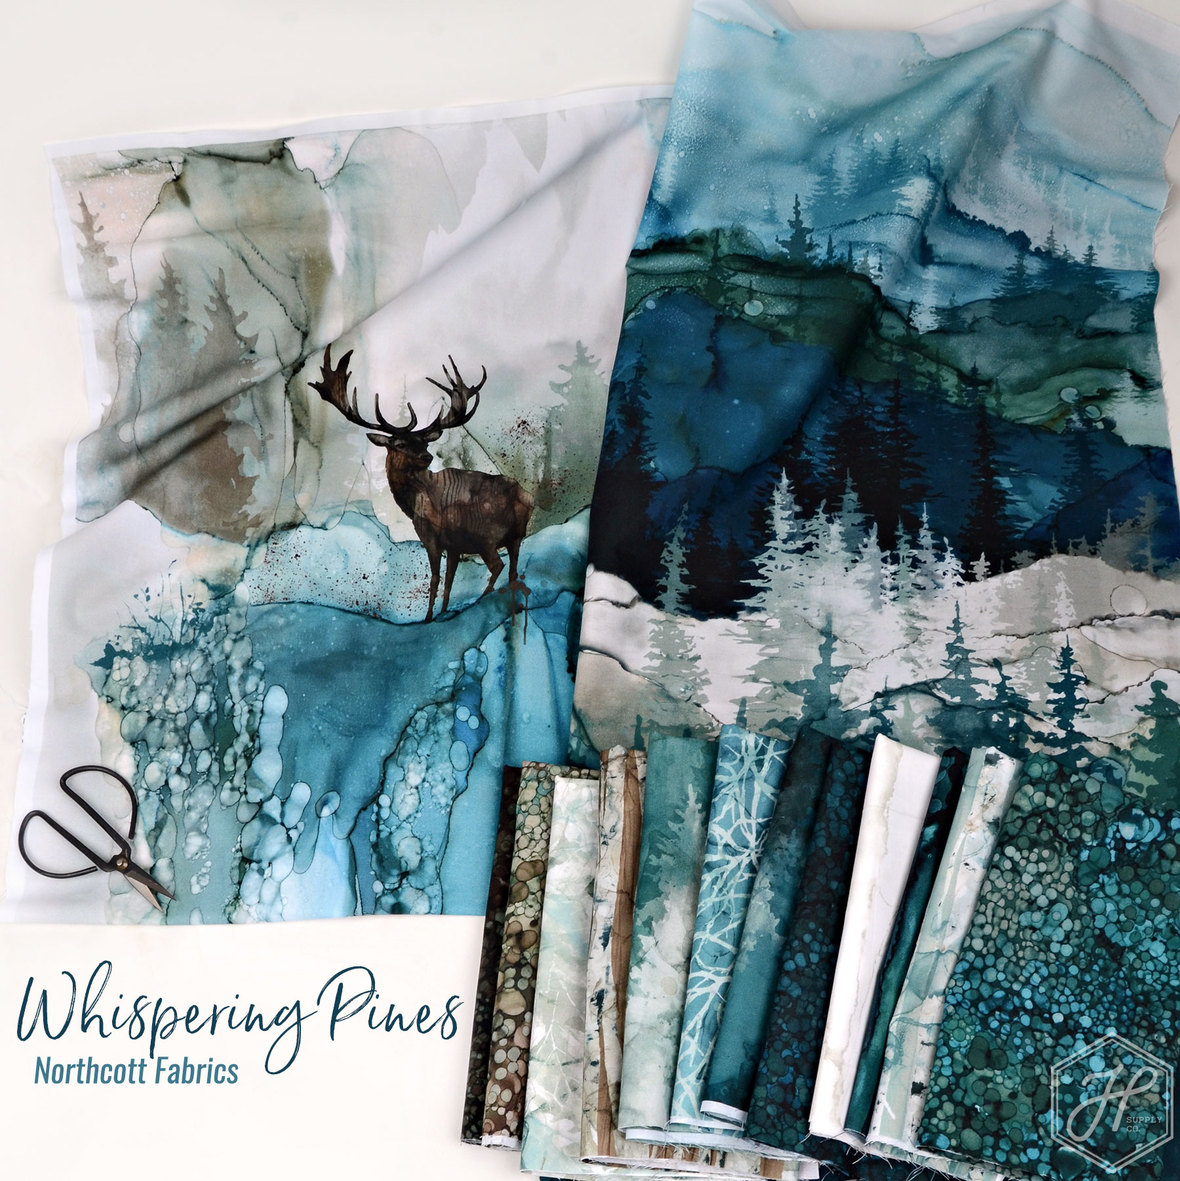 Whispering-Pines-Fabric-Northcott-at-Hawthorne-Supply-Co